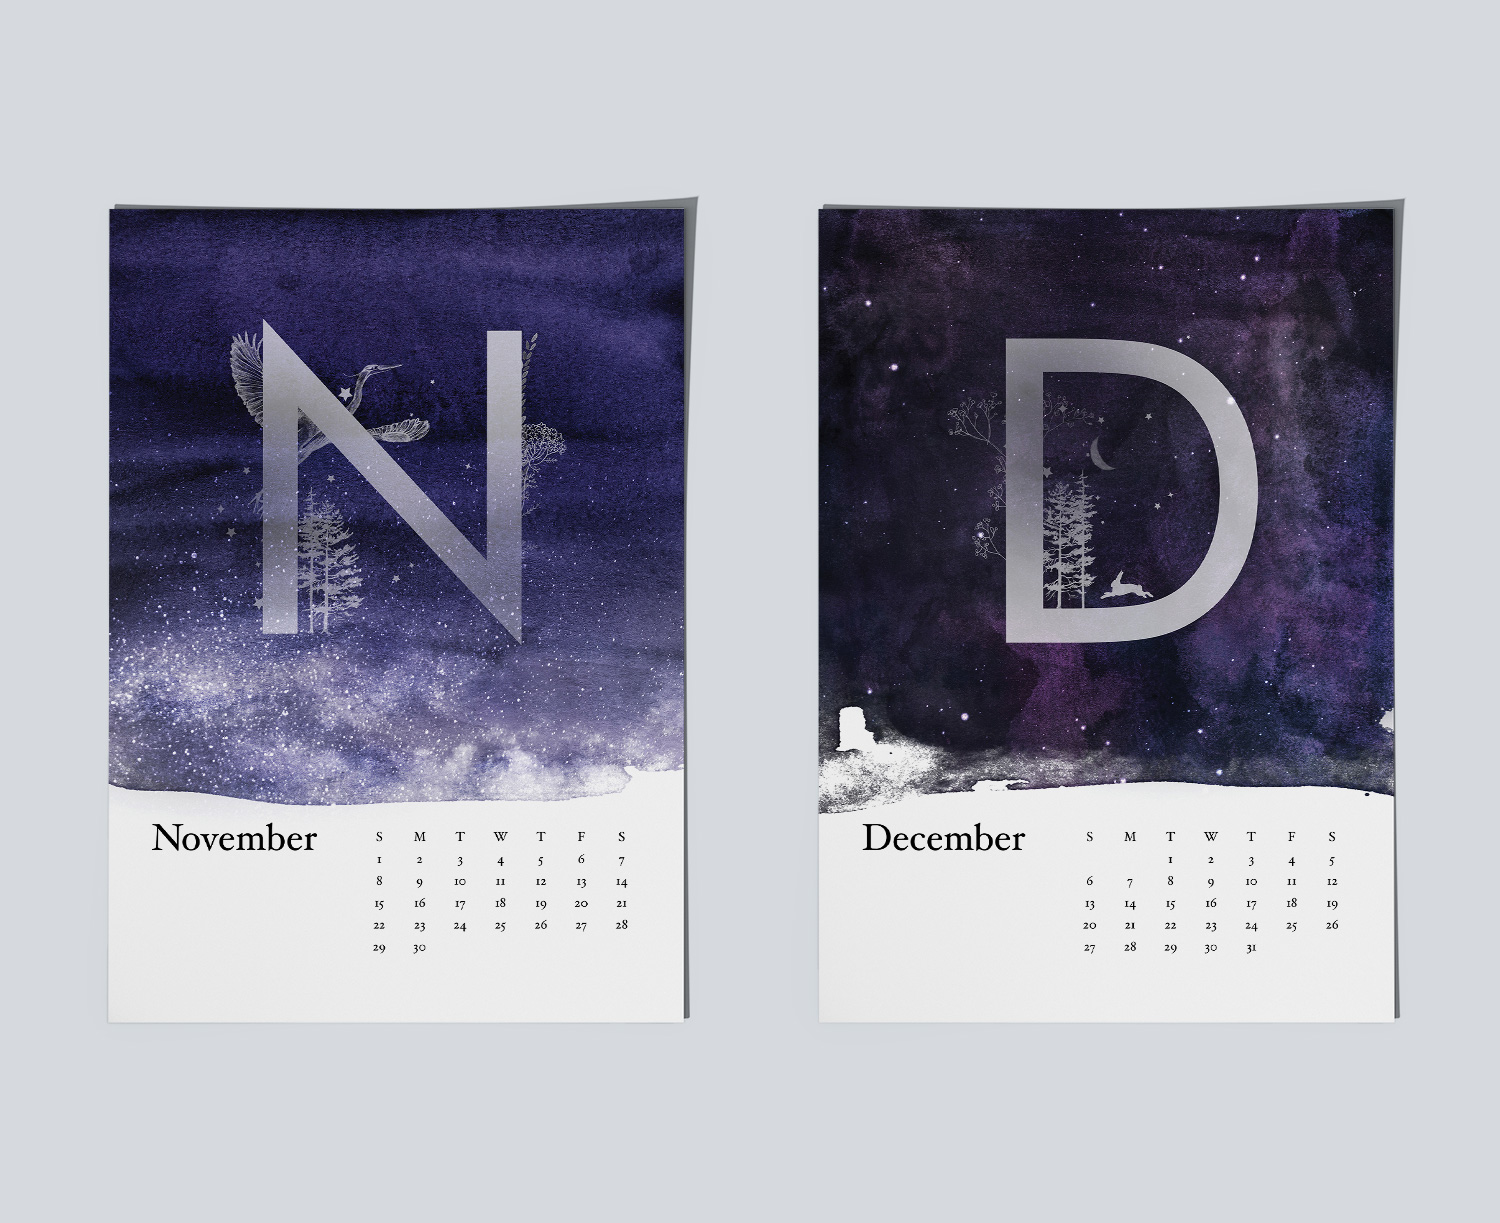 Example of magical night sky paintings for calendar.Example of magical night sky paintings for November and December months.